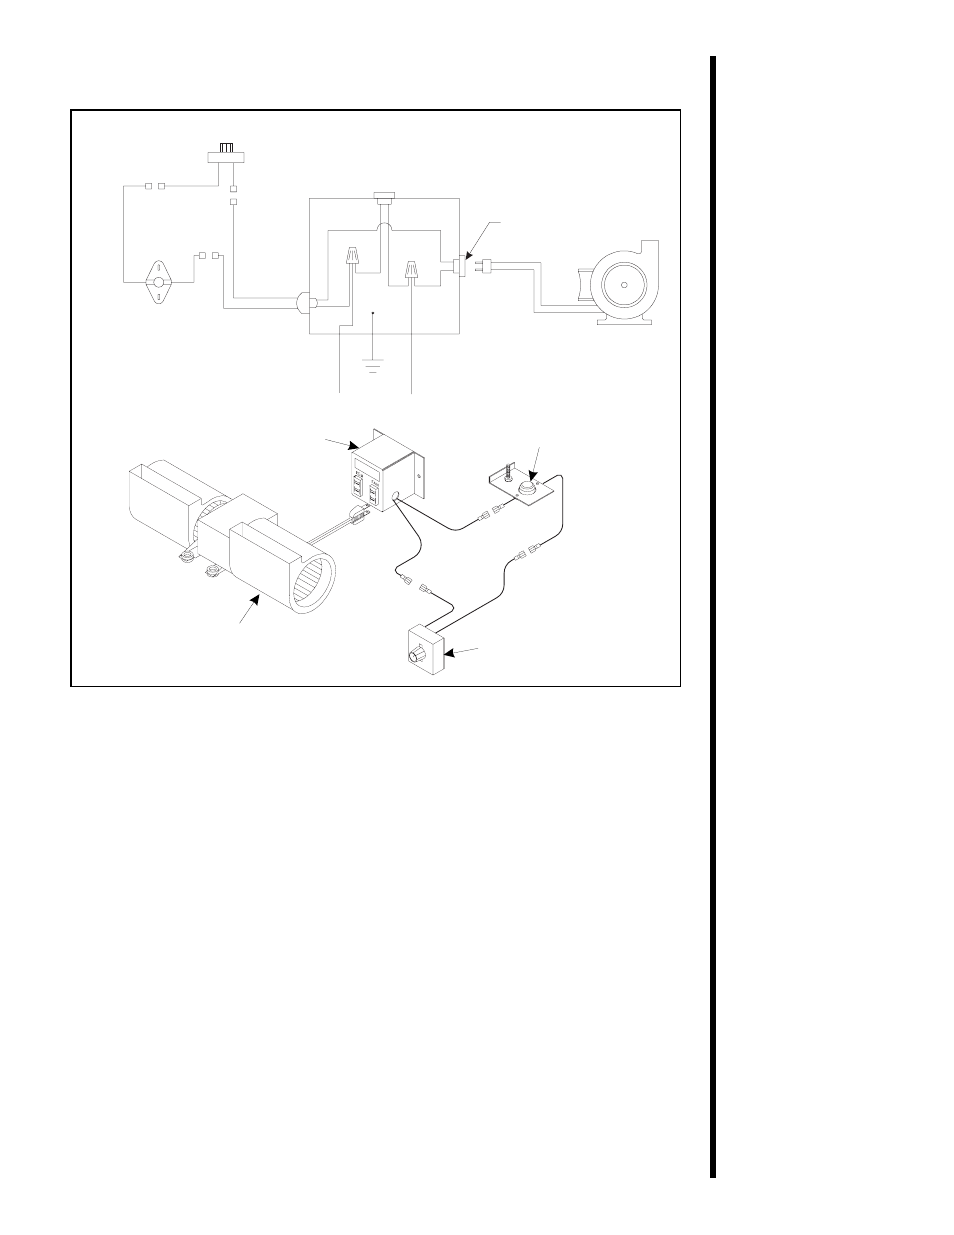 Caution  For Direct Spark Ignition  Dsi  Wiring  Figure 31